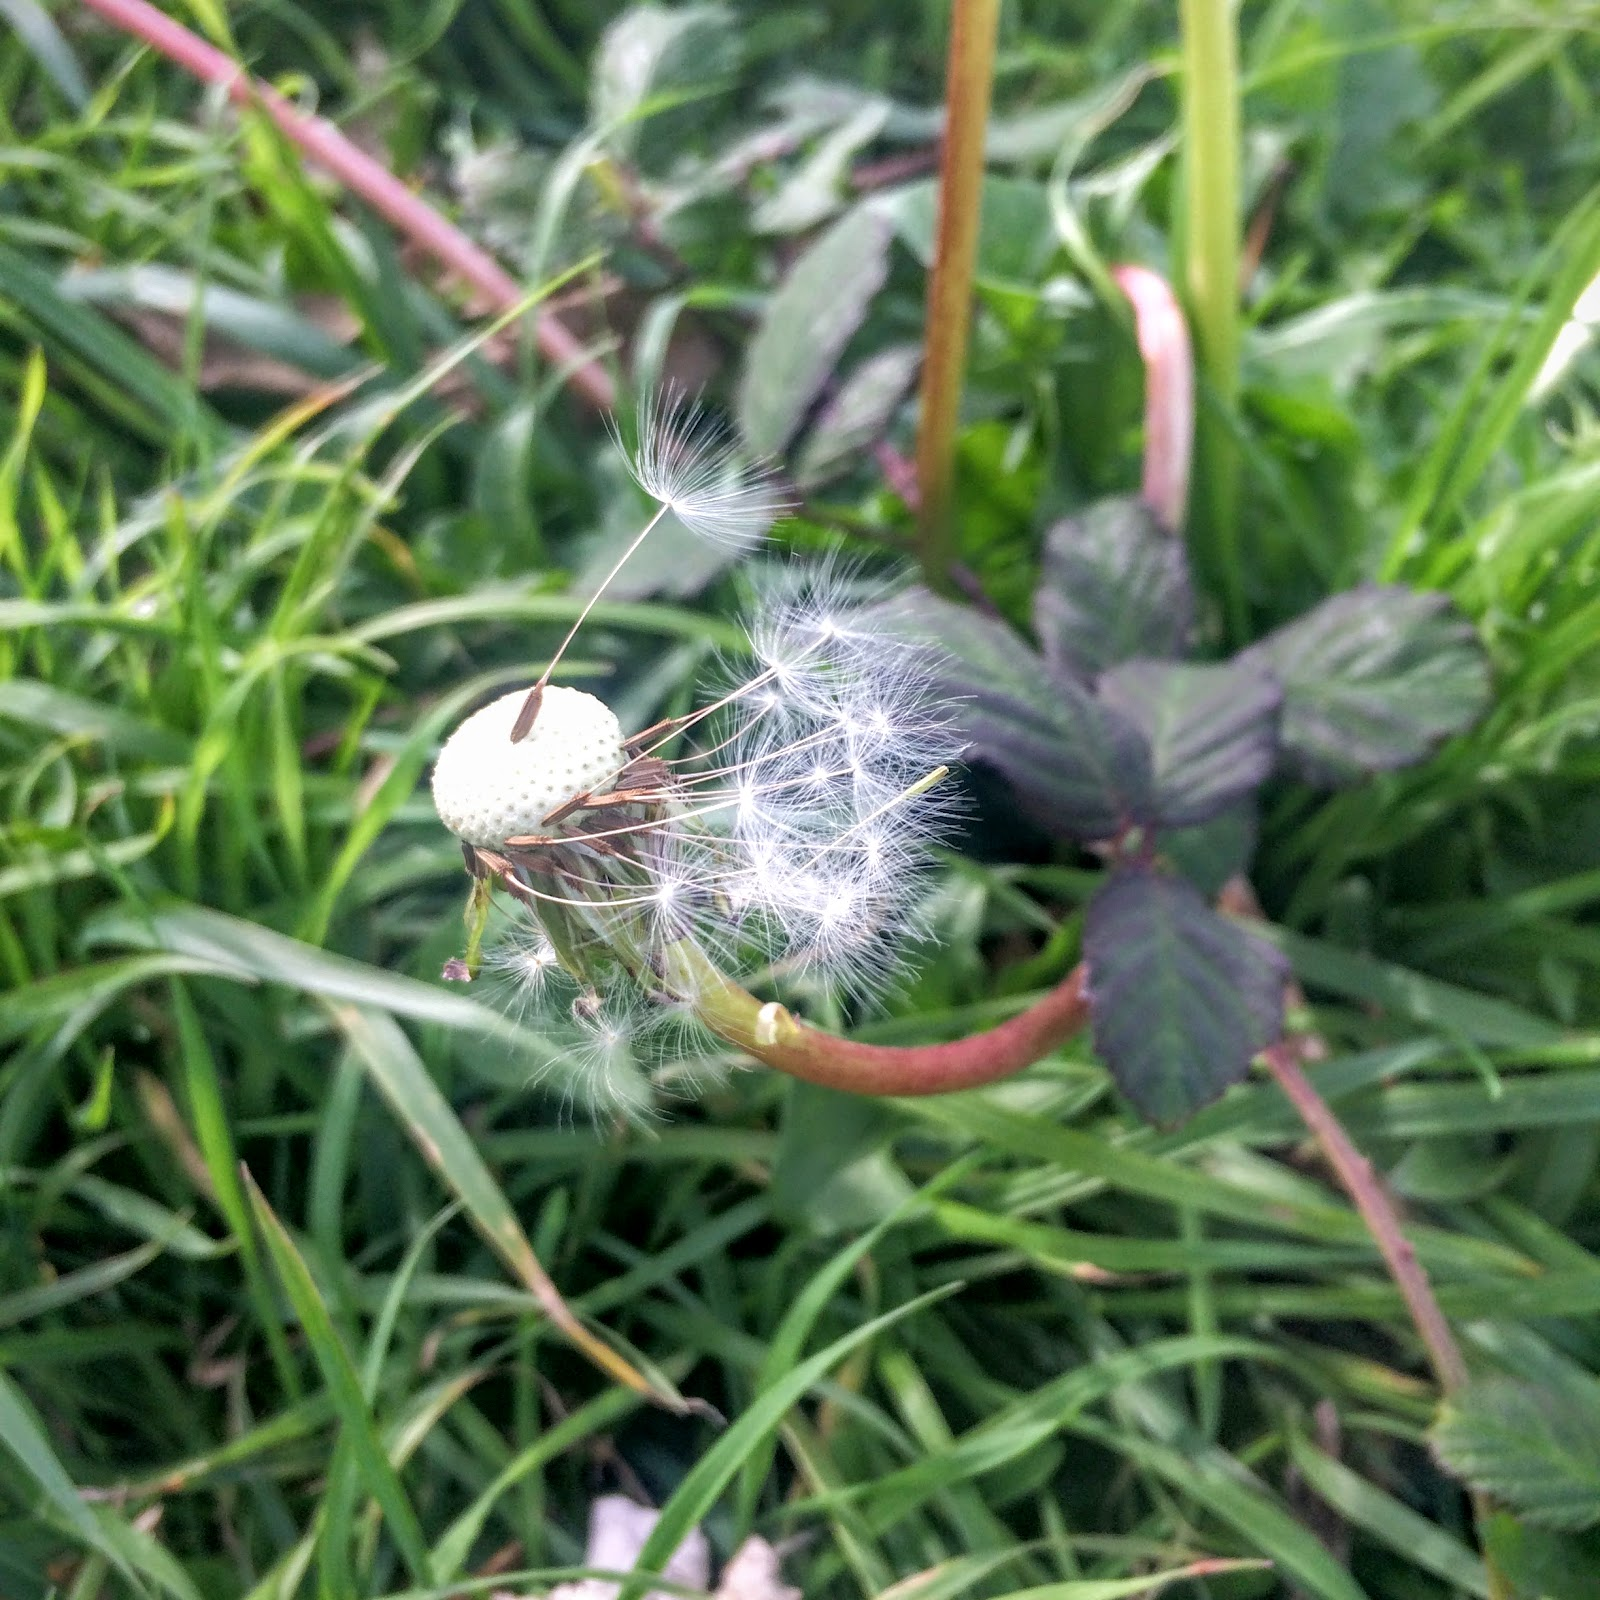 dandelion, sycamore seeds, helicopter, sycamore, seed dispersal, eaves, autumn leaves, throw leaves, fall leaves, fall, leaves on ground, play in leaves,  school runs, pembrokeshire, rural life, everyday, nature walk, pink flowers,